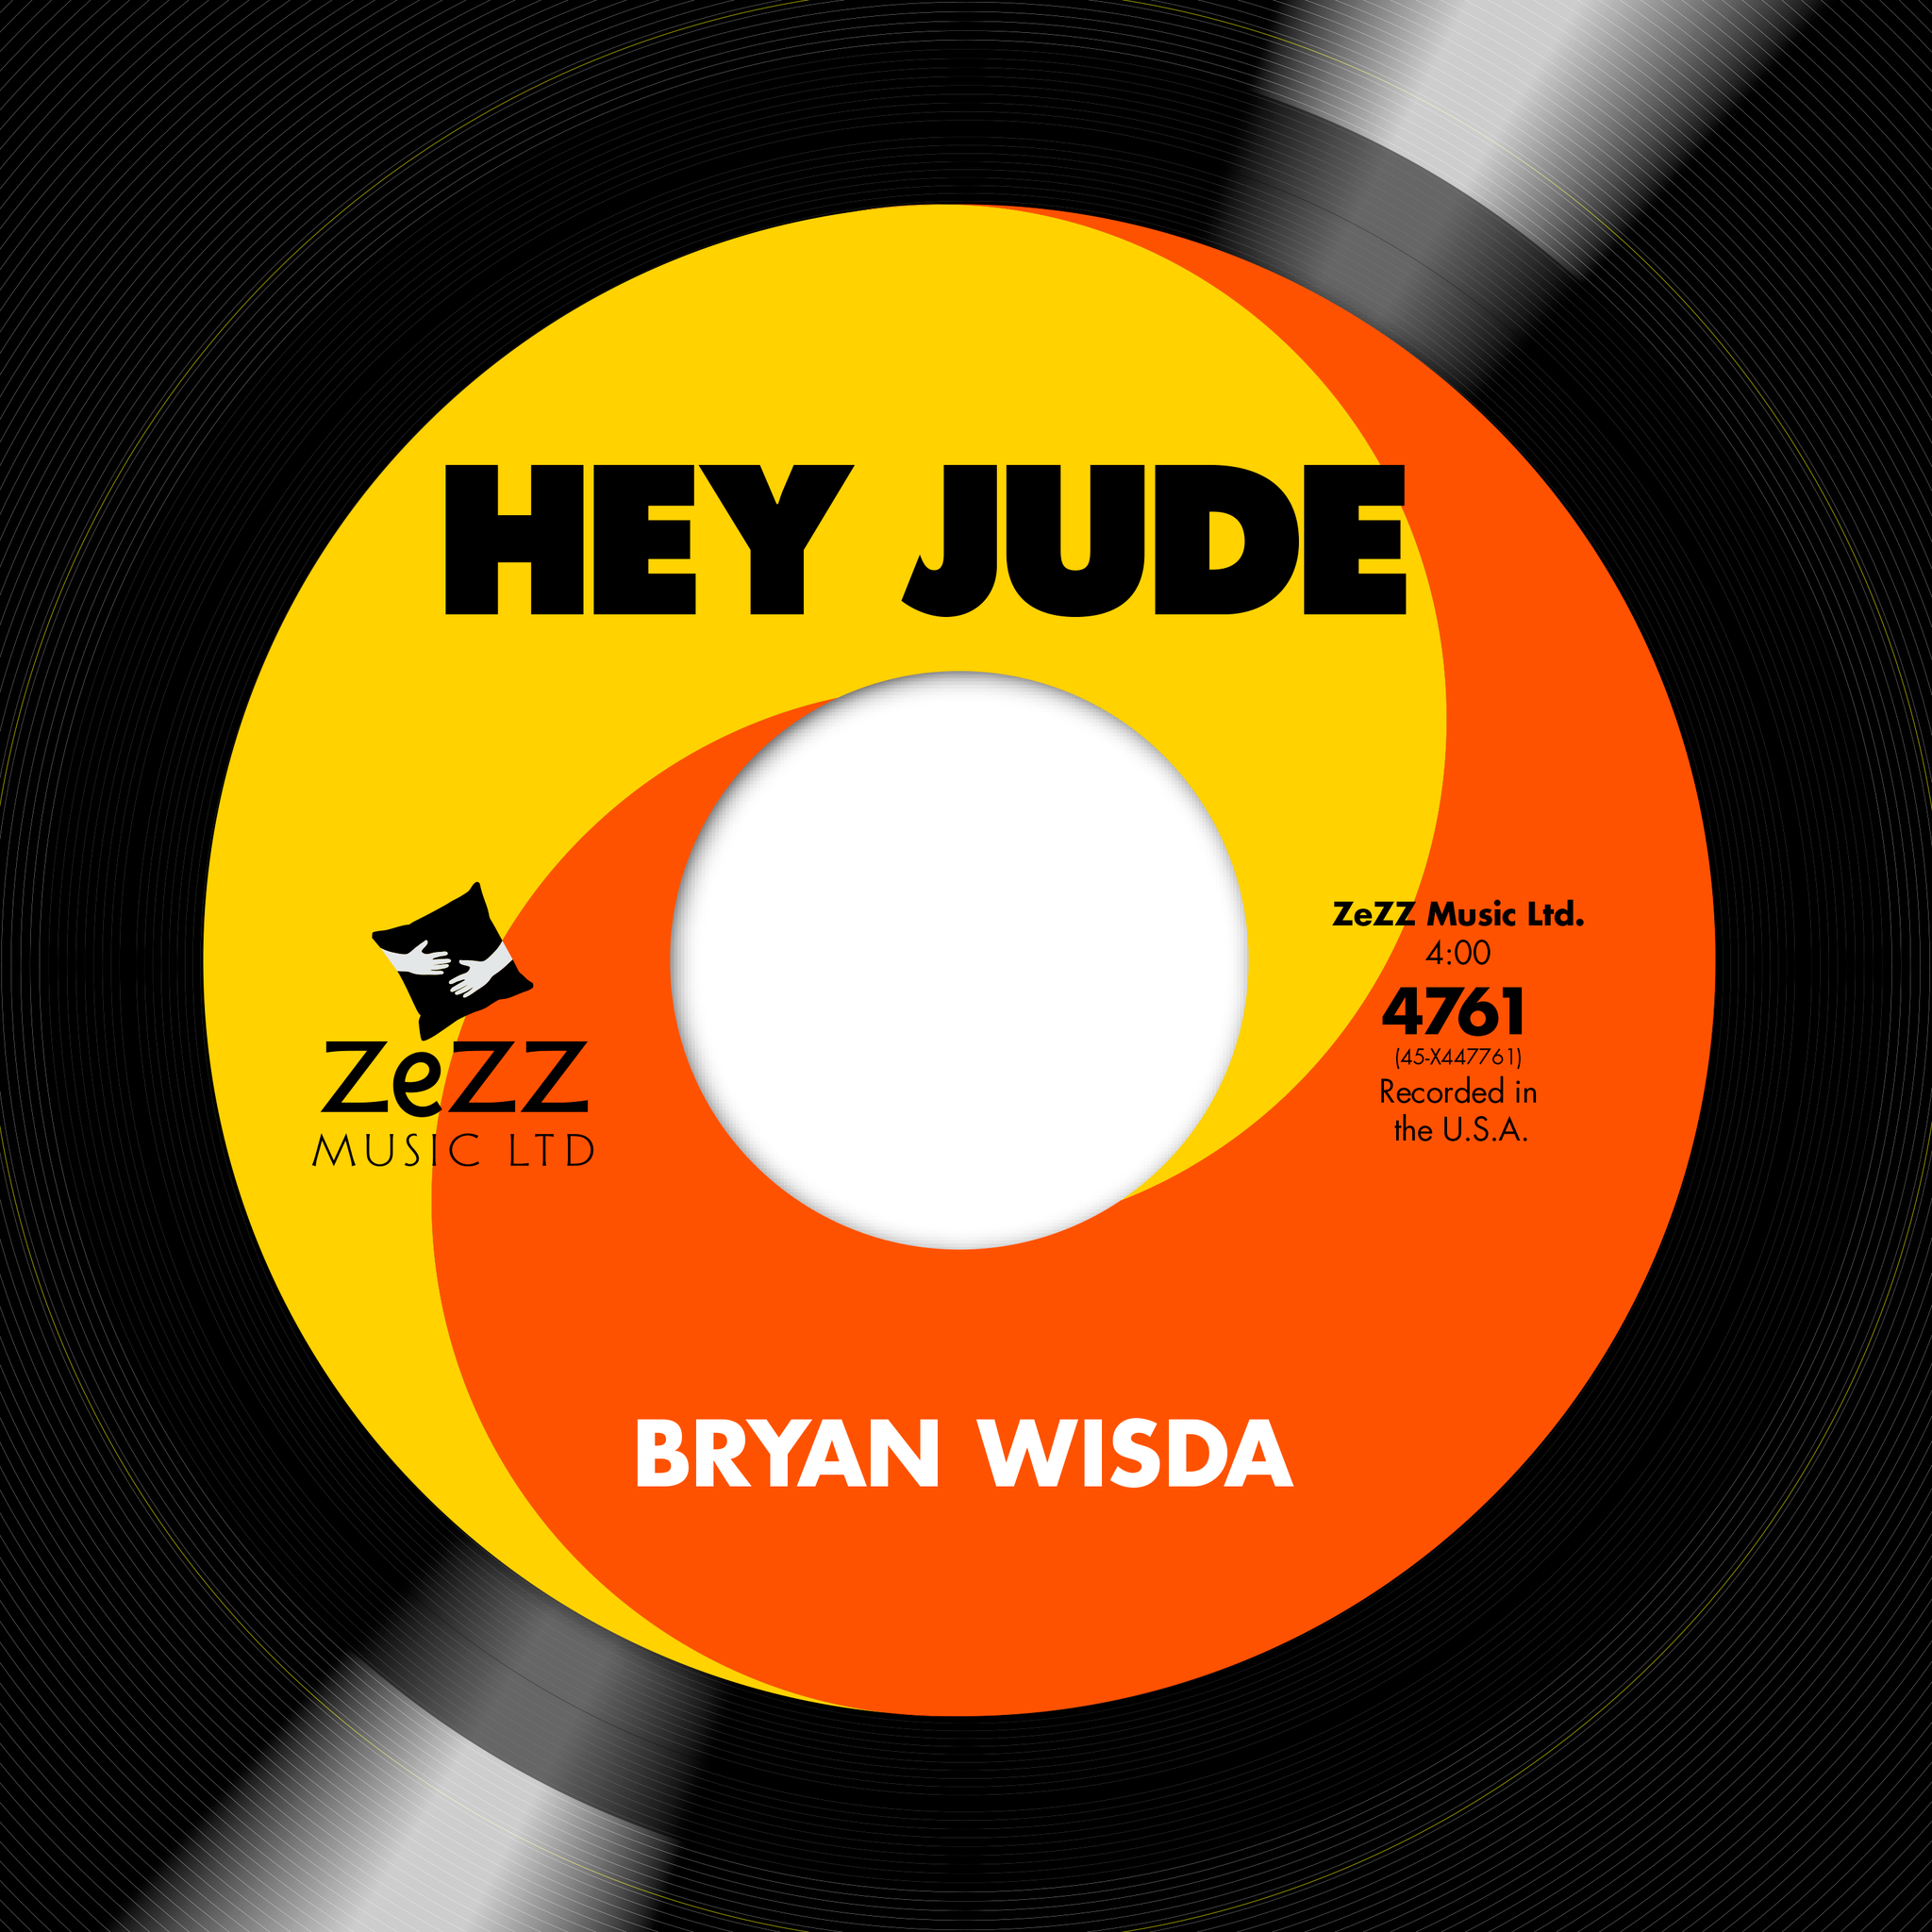 Bryan Wisda releases cover of Hey Jude